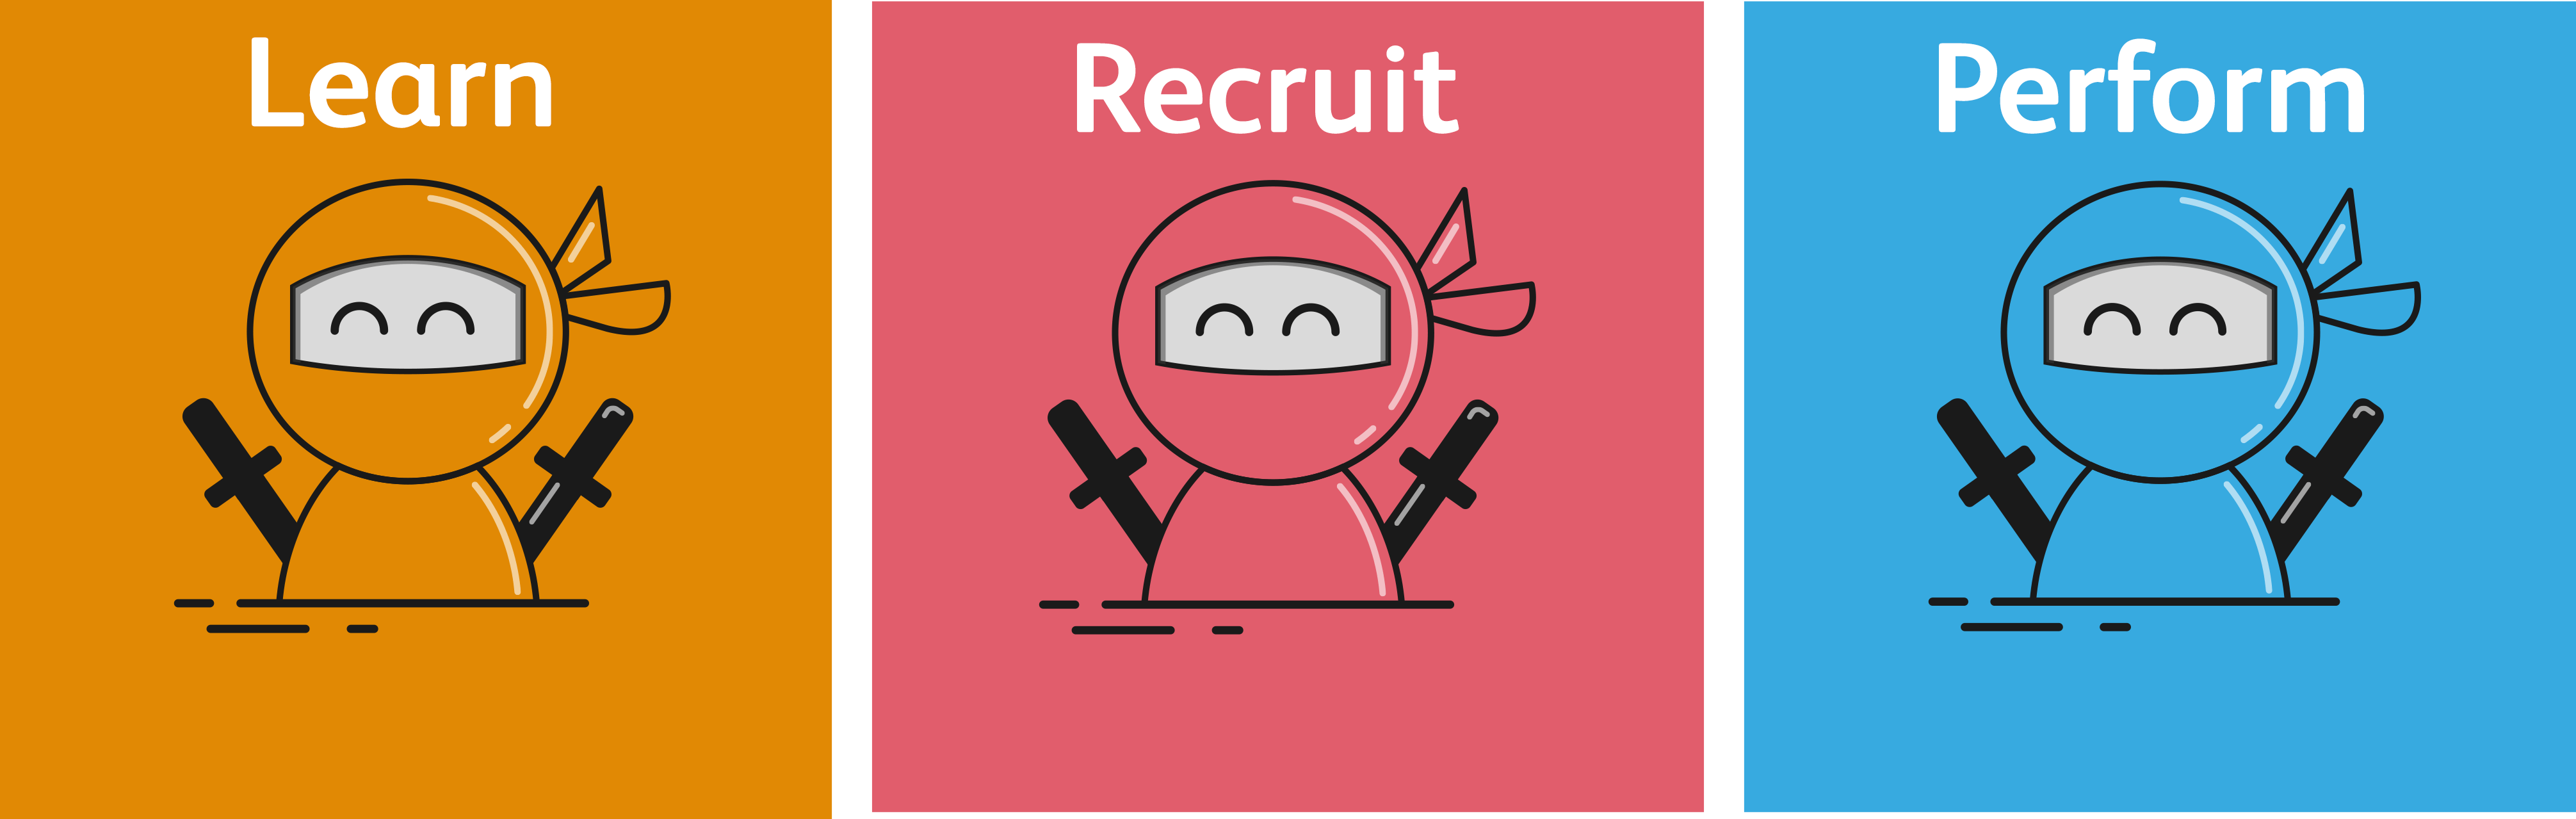 Learn | Recruit | Perform